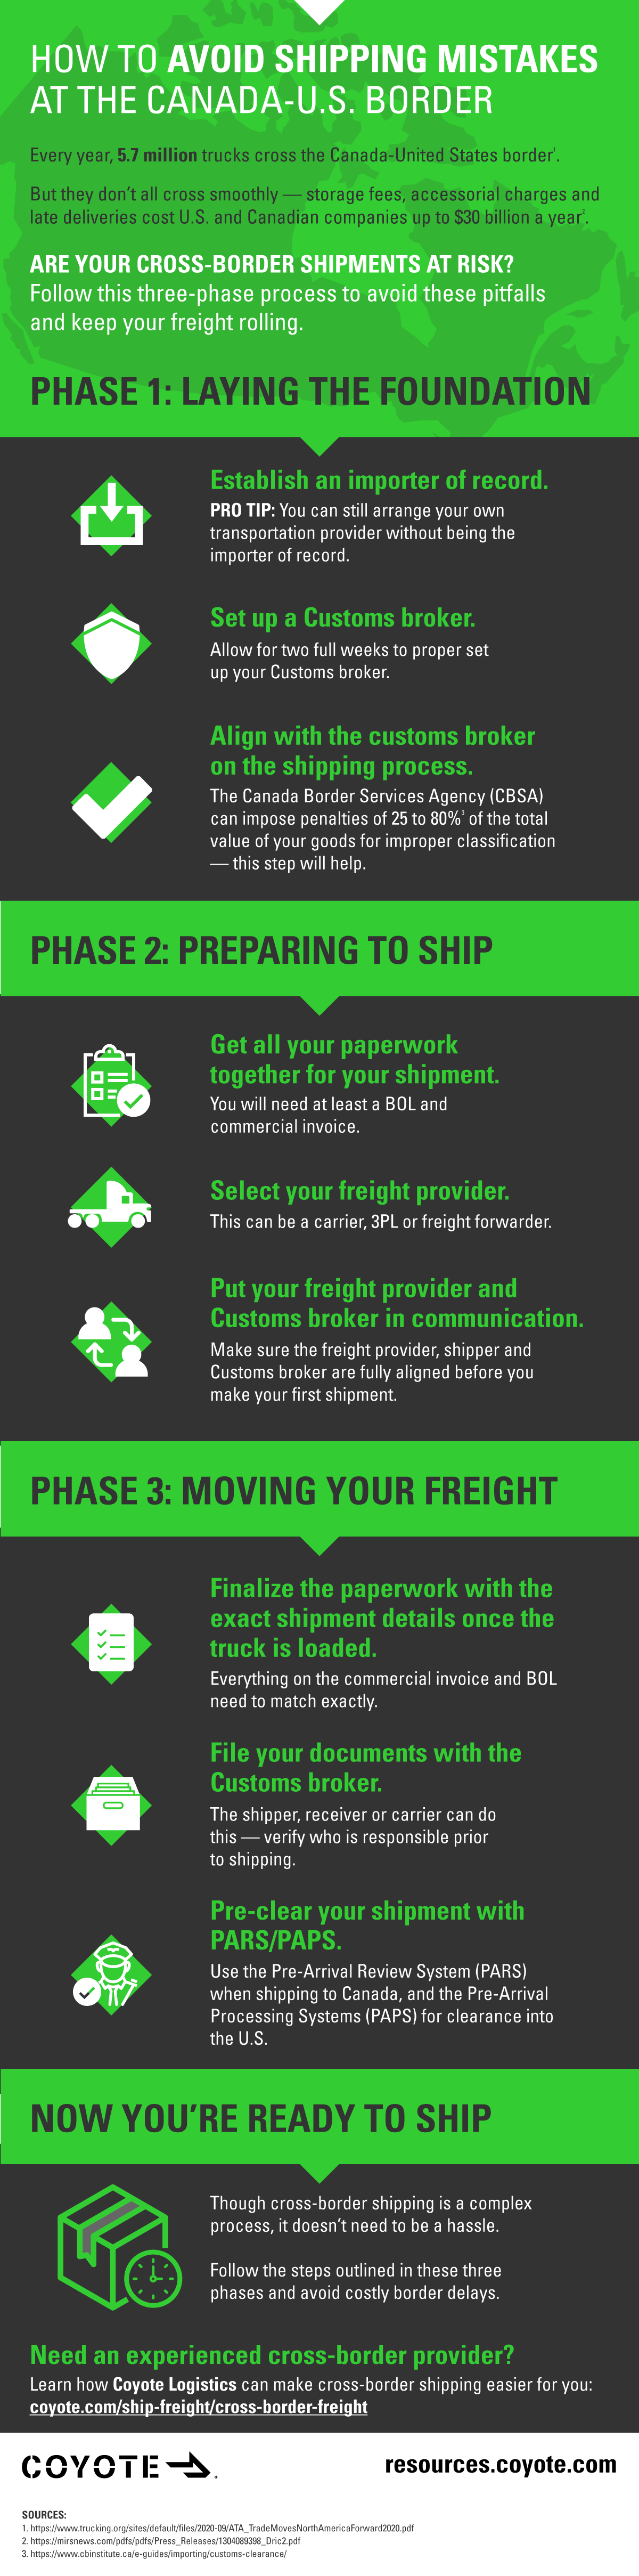 Cross-border freight infographic, how to ship truckload from U.S. to Canada in a step-by-step process